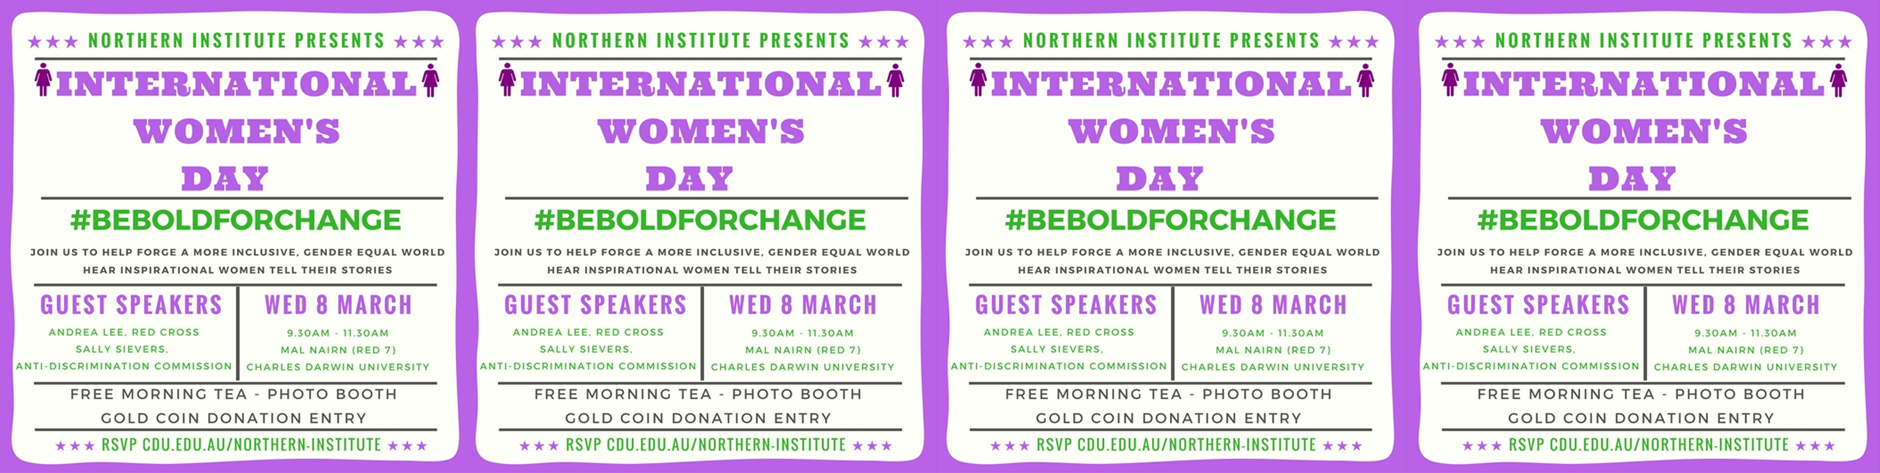 international women's day 2017 northern institute